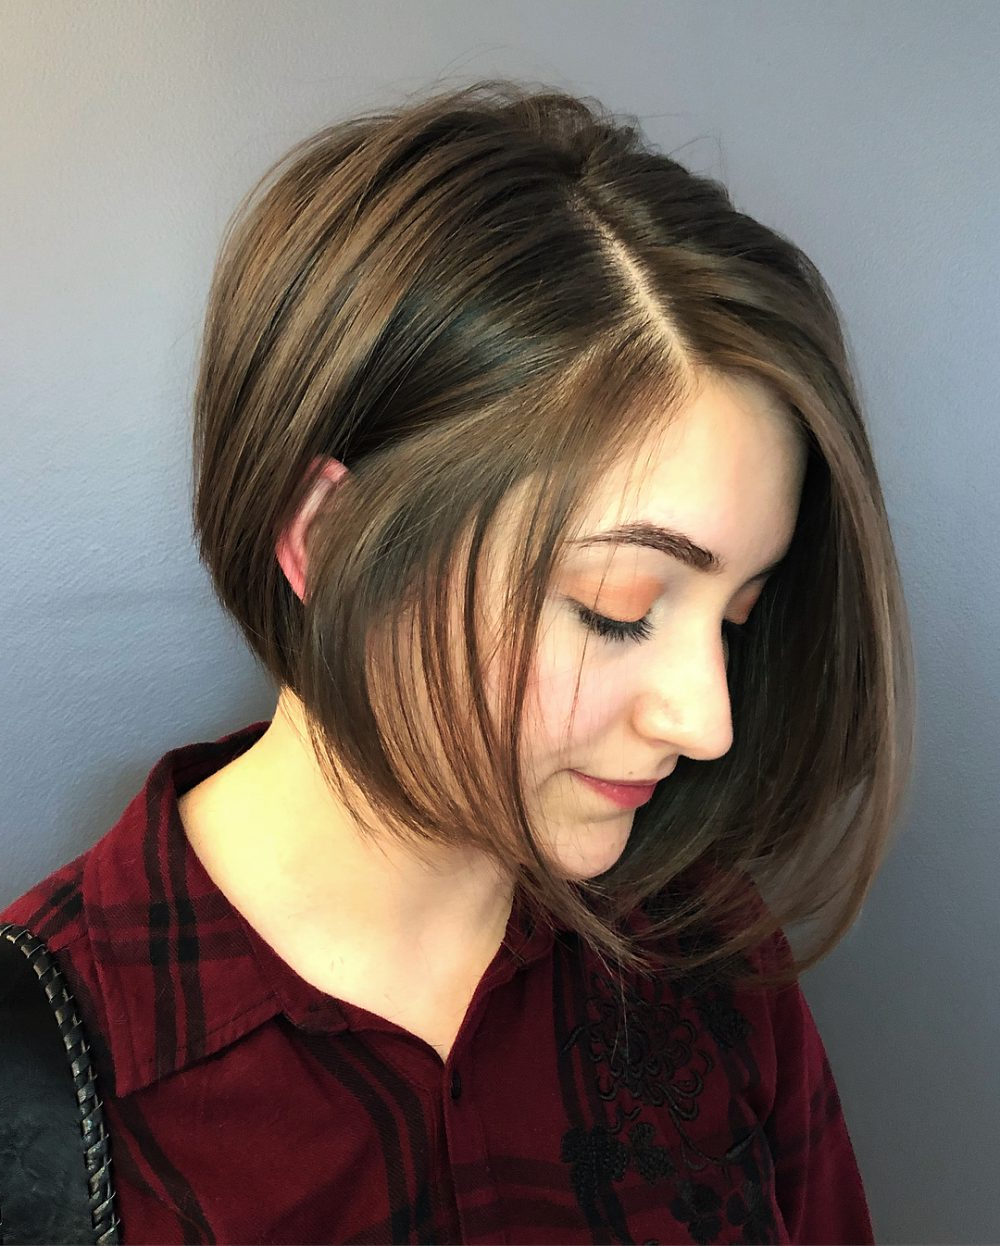 33 Flattering Short Hairstyles For Round Faces In 2018 Regarding Funky Short Haircuts For Round Faces (View 5 of 25)